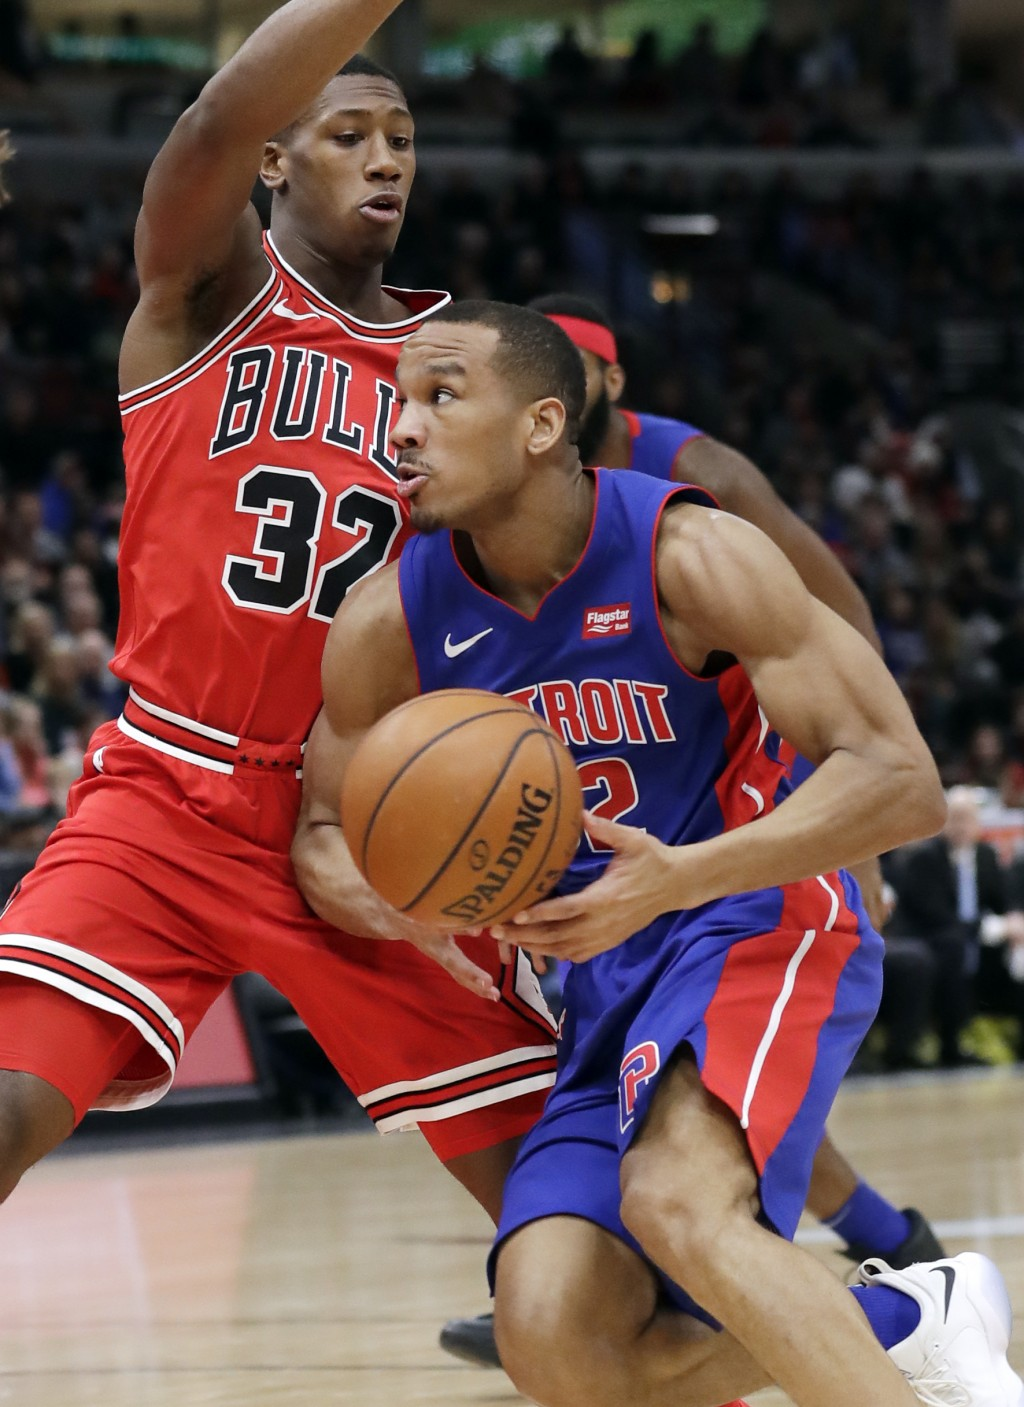 Detroit Pistons guard Avery Bradley, right, drives to the basket against Chicago Bulls guard Kris Dunn during the first half of an NBA basketball game